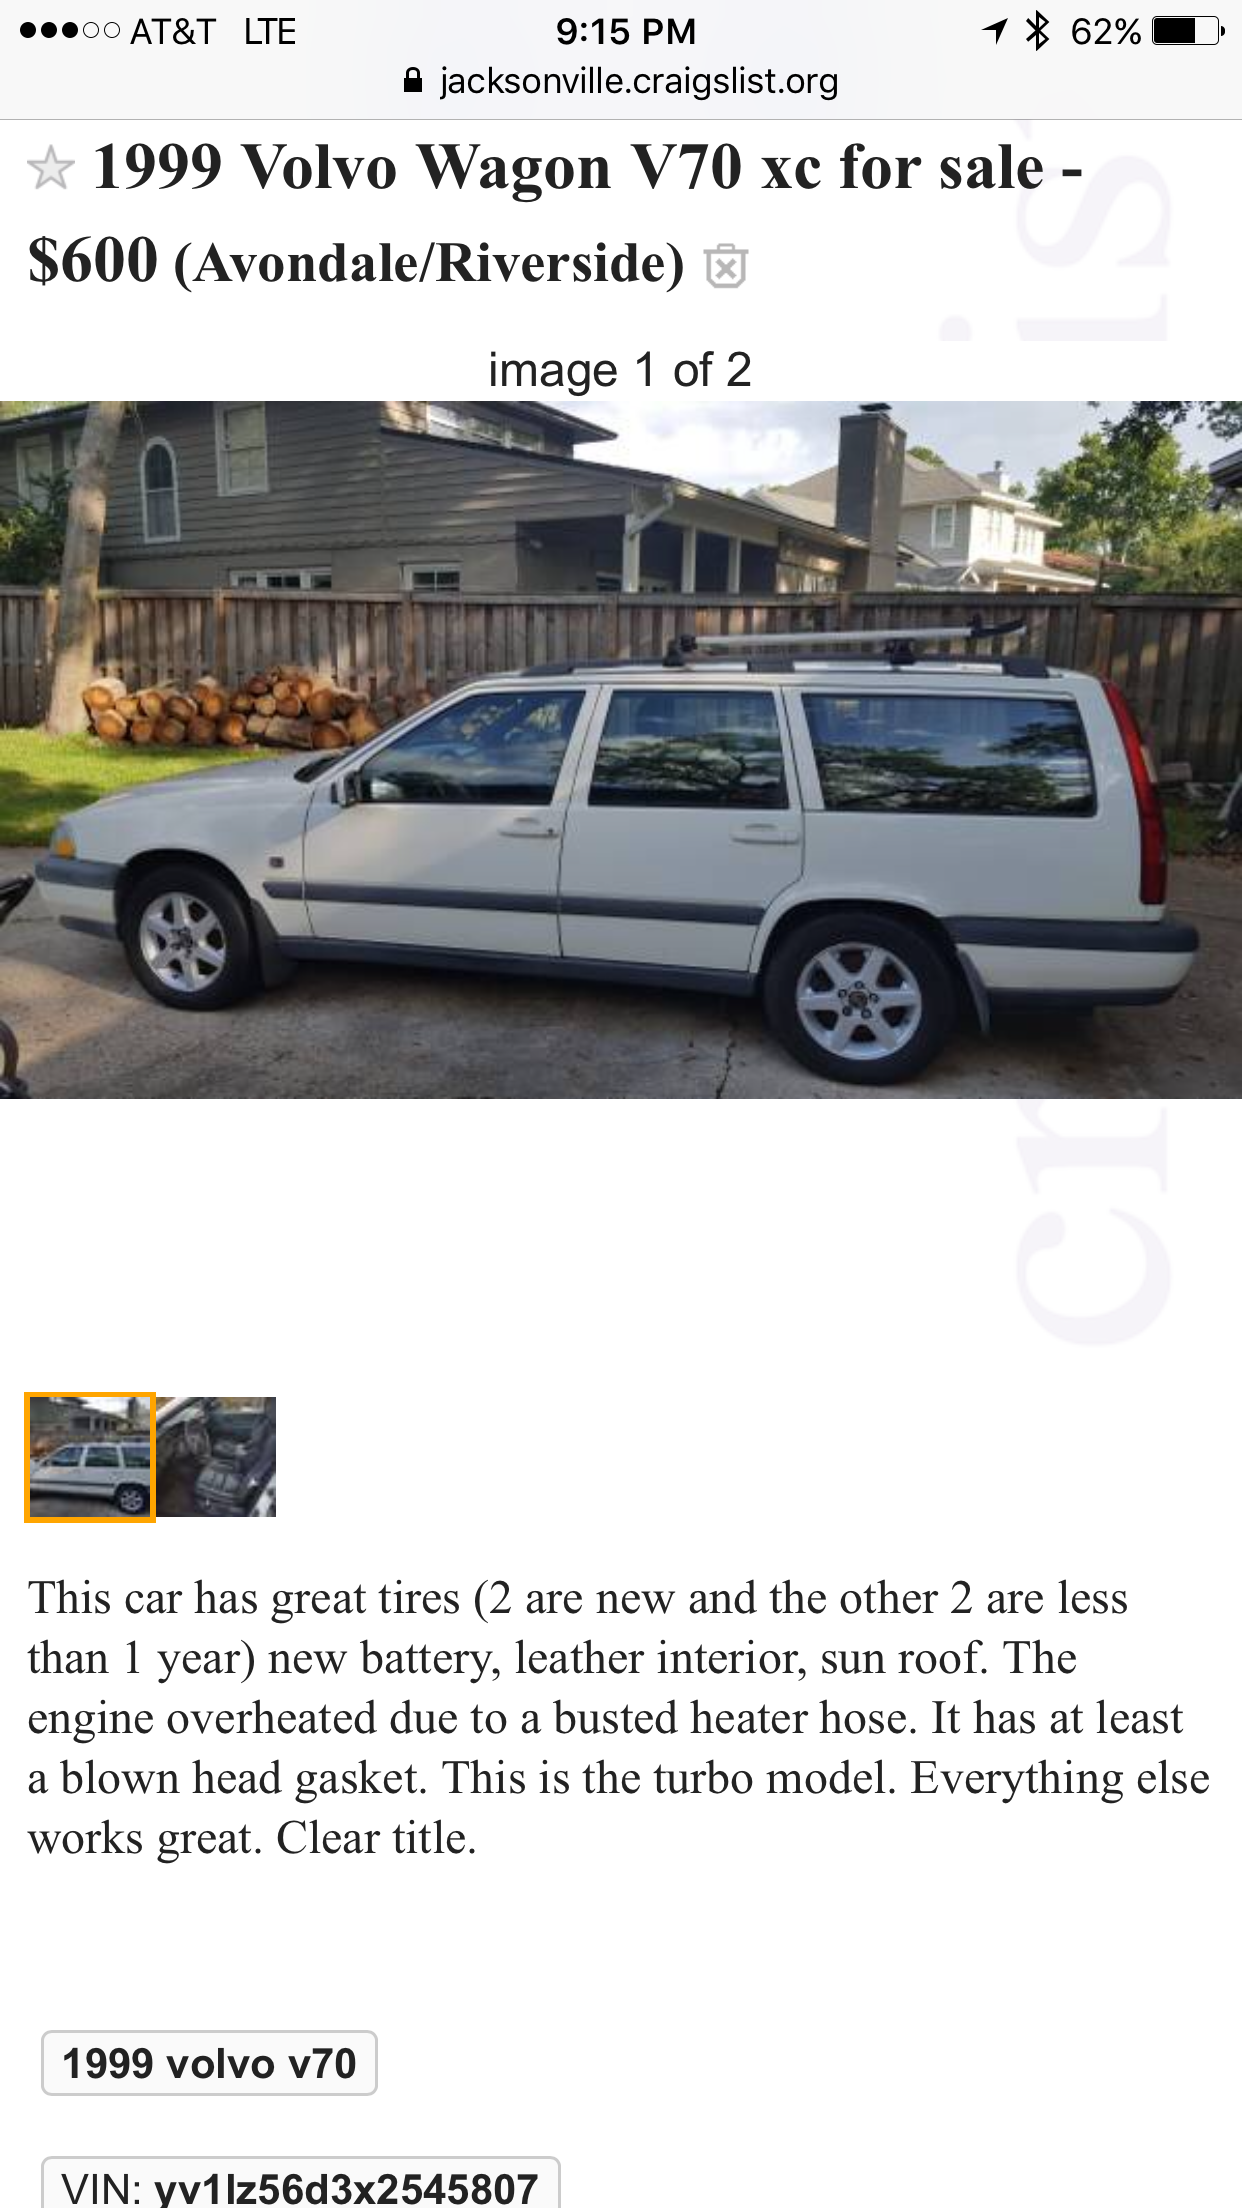 Project Volvo Wagon: Let's Buy Two More | Volvo V70 XC | Project Car